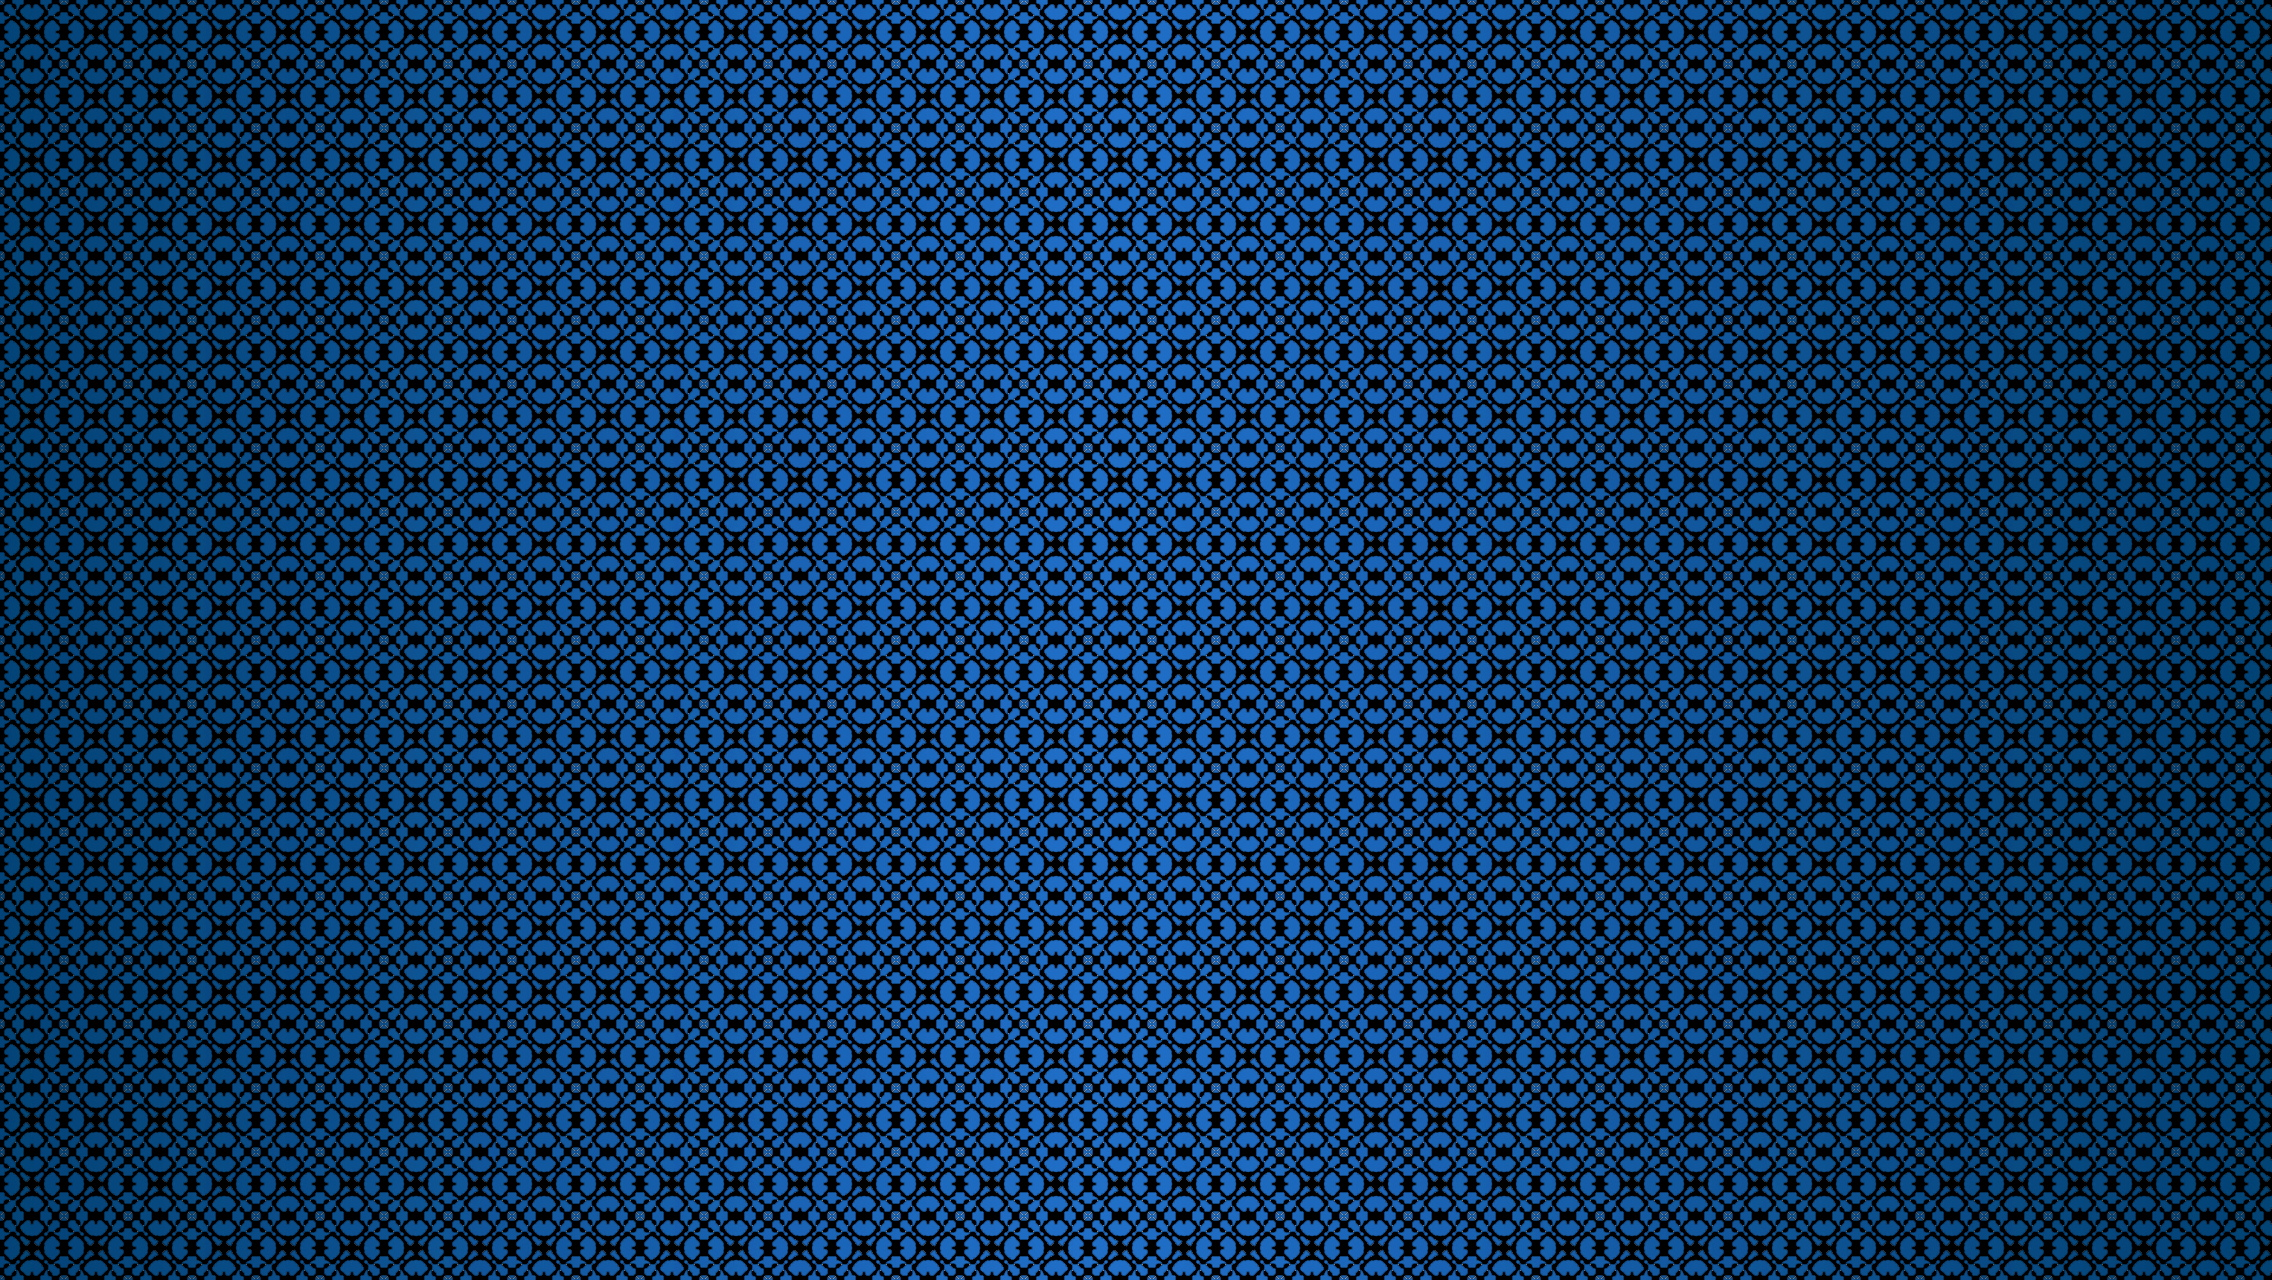 Blue wallpaper full hd wallpaper and background image for Blue patterned wallpaper bedroom